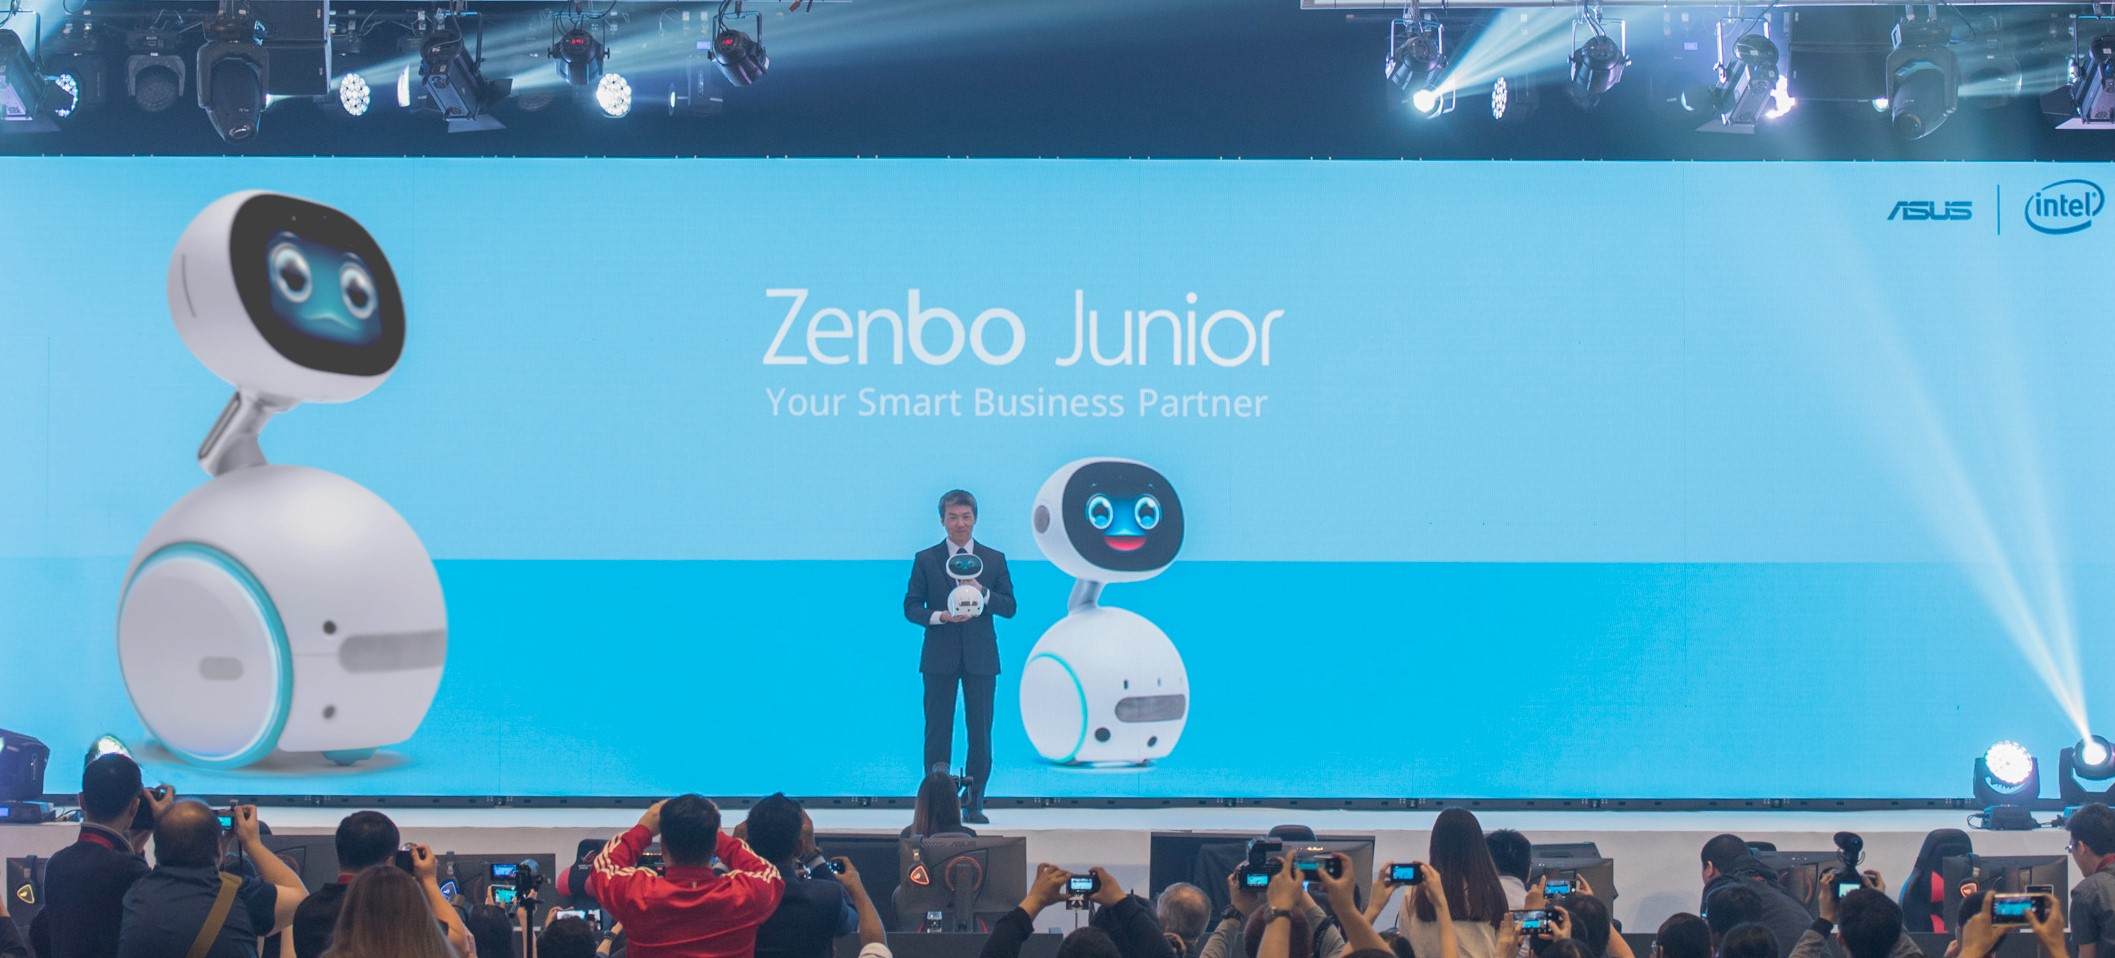 What can Asus Zenbo Junior robot do?